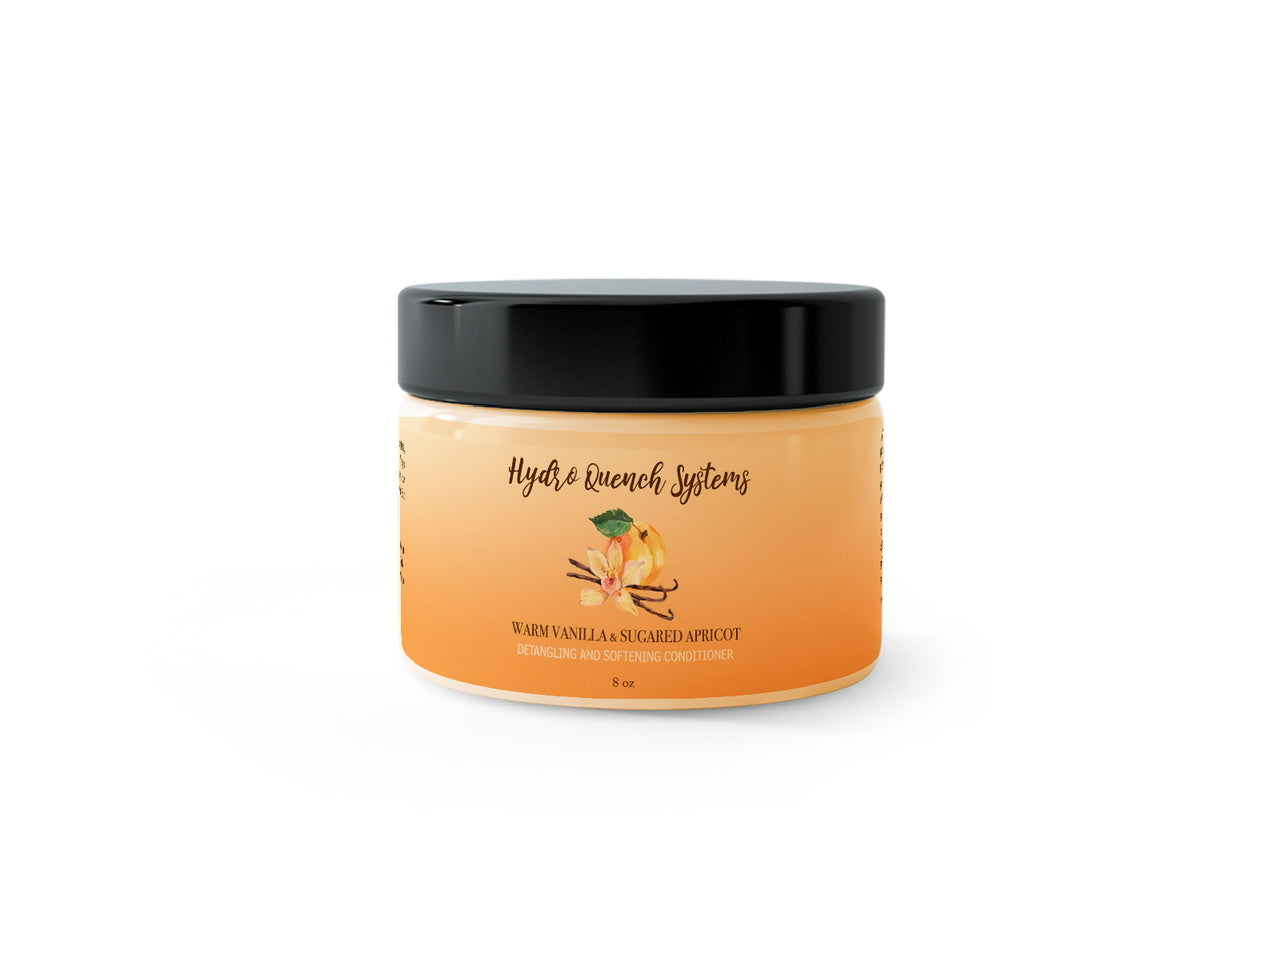 Warm Vanilla & Sugared Apricot Detangling and Softening Conditioner